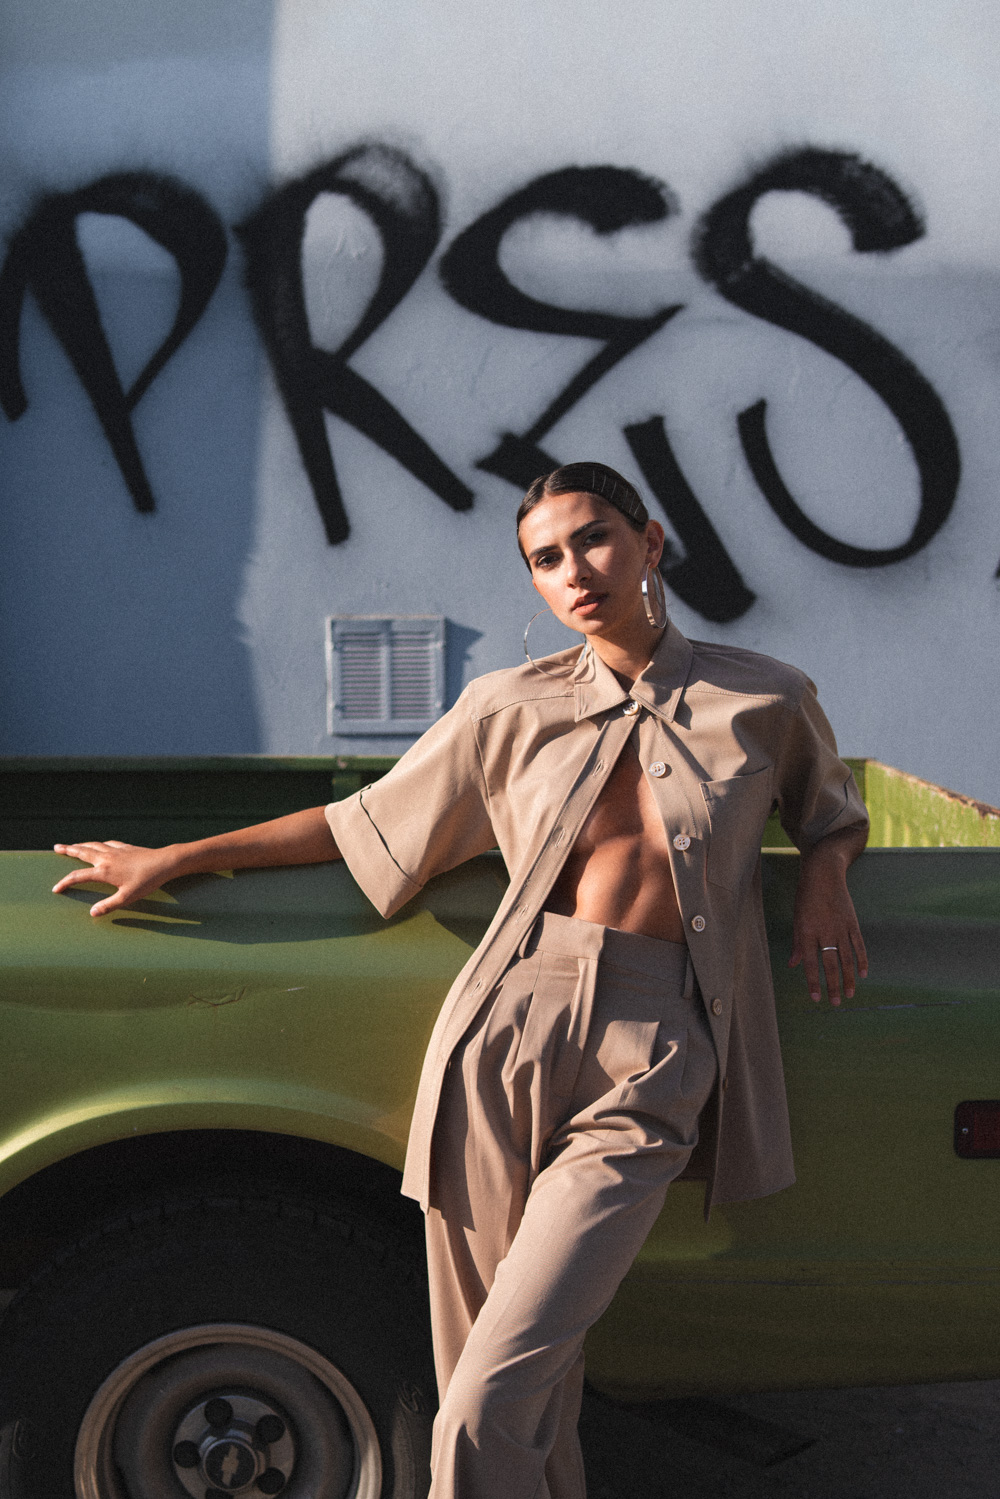 Styling and Photography by Emily Tong with Lauren Umansky wearing Zara and vintage